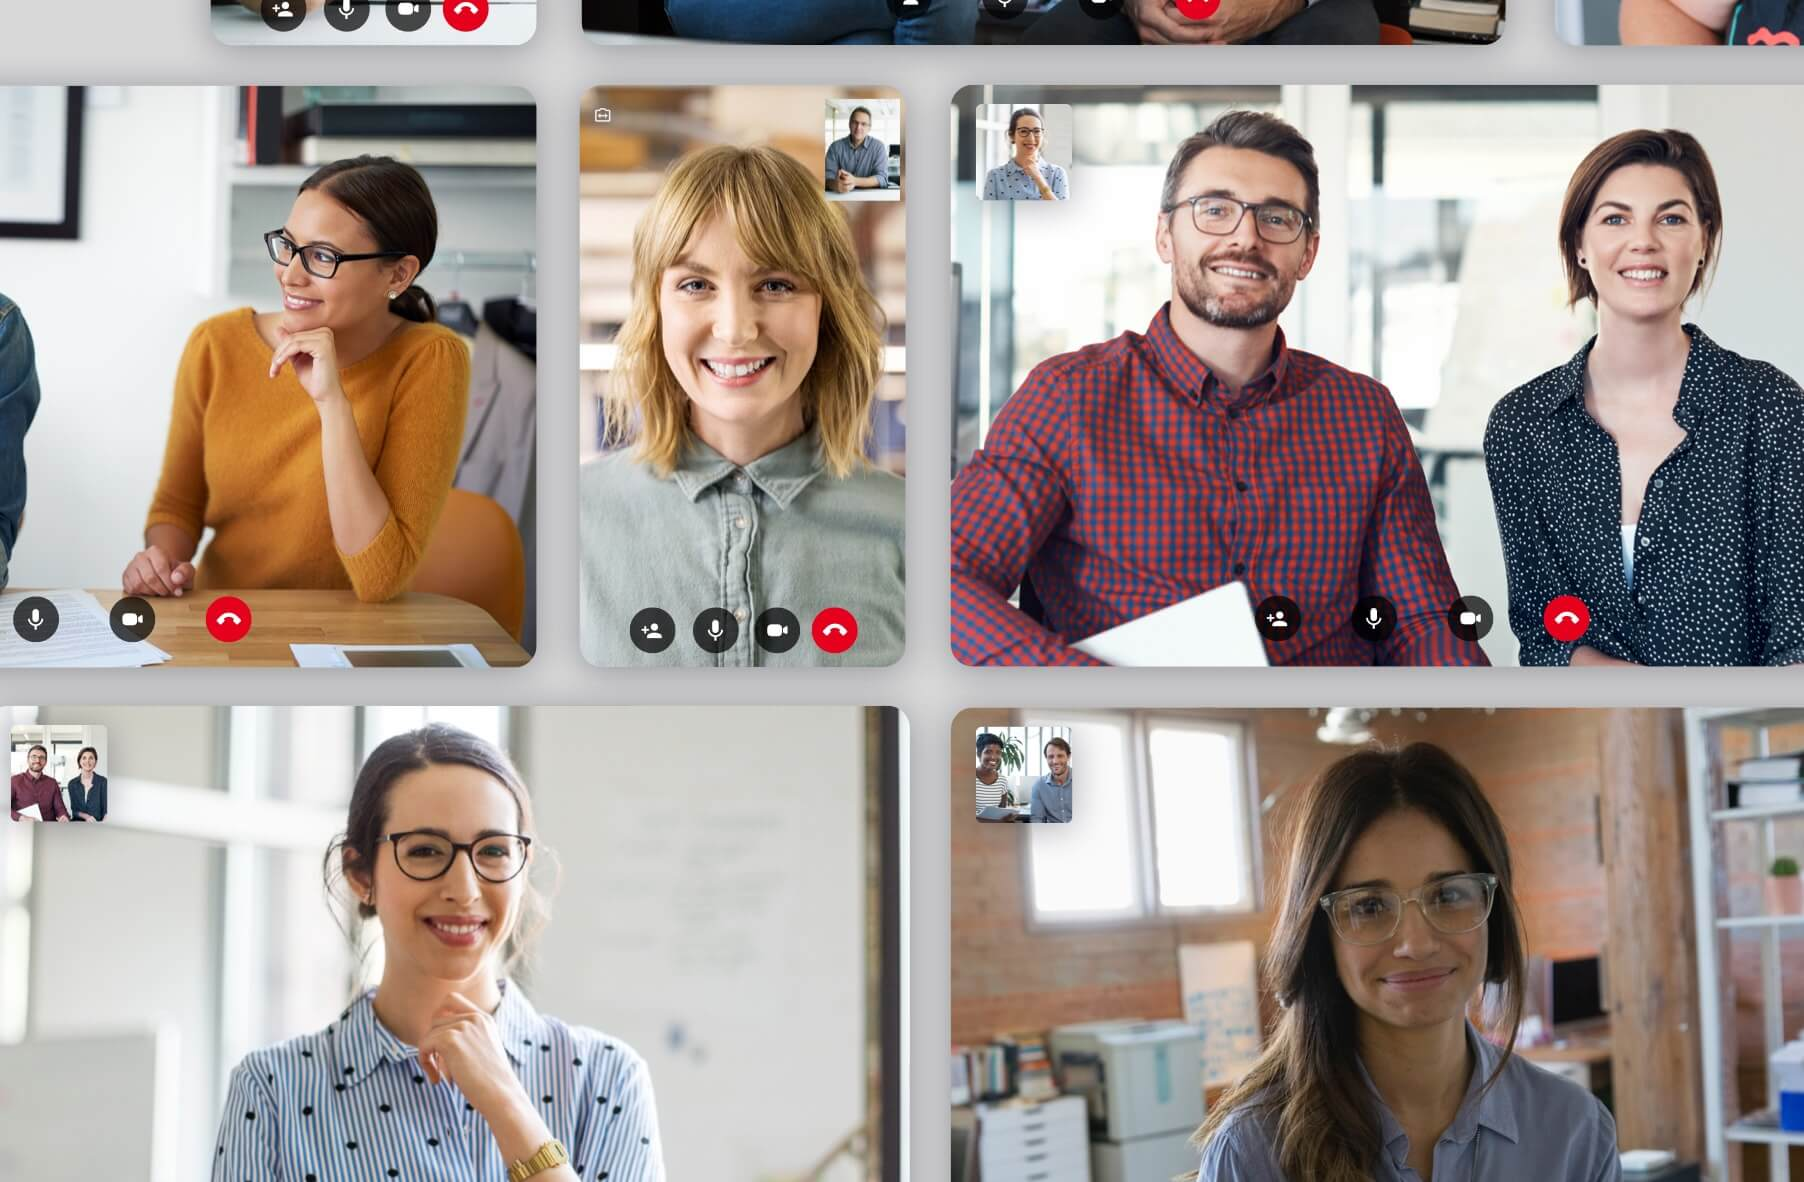 Unlimited Free Video Conference Calling from the Best Brand